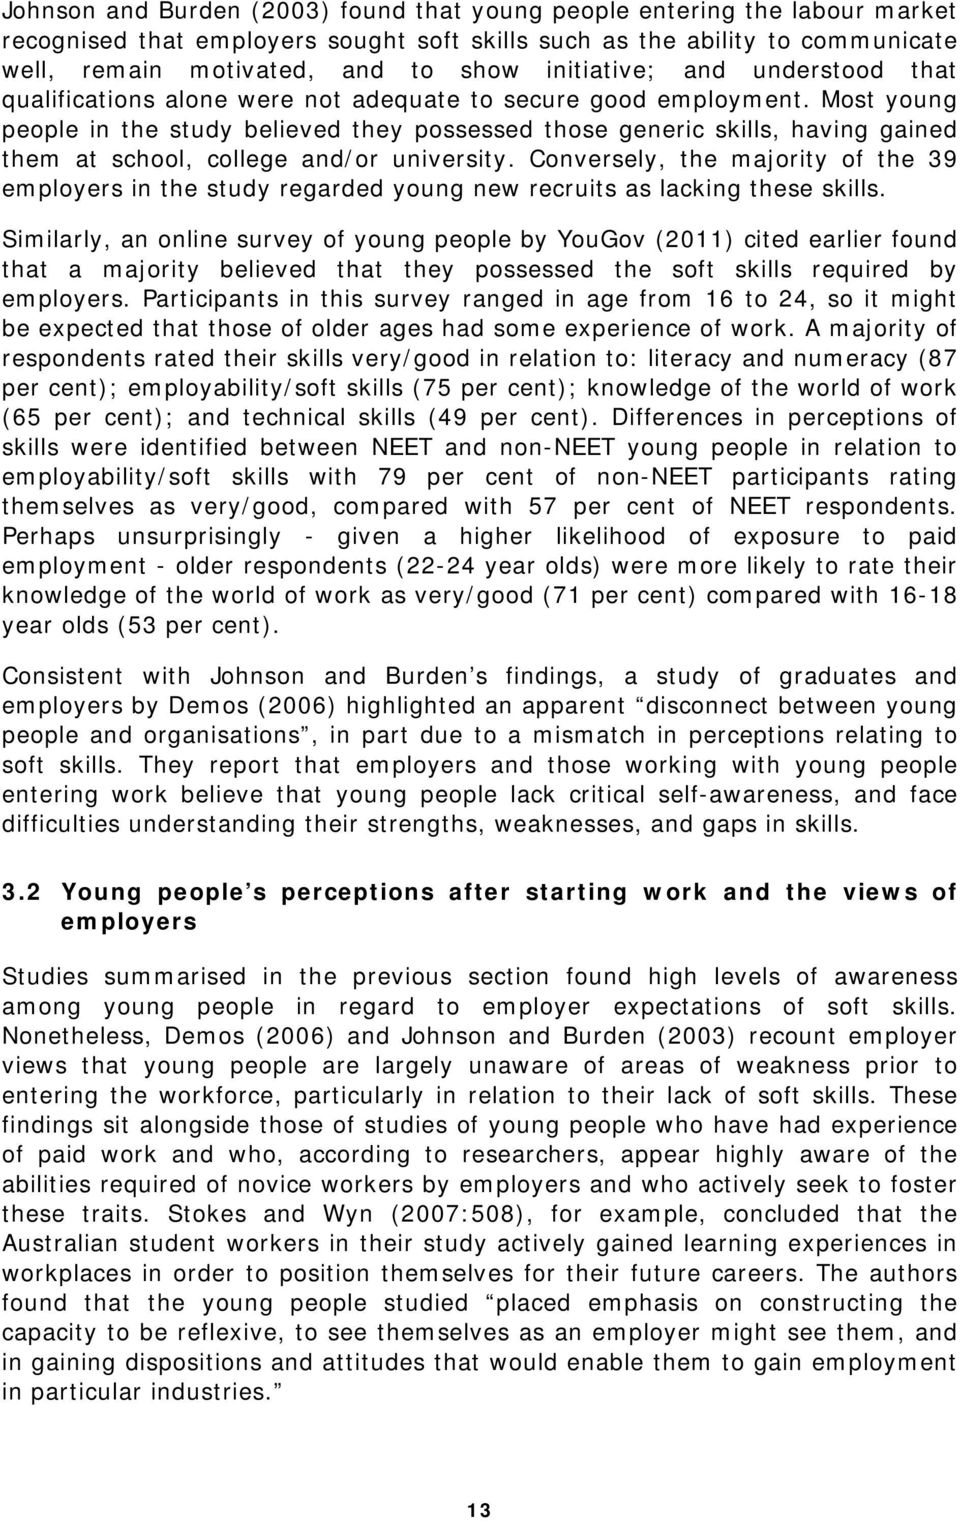 Most young people in the study believed they possessed those generic skills, having gained them at school, college and/or university.